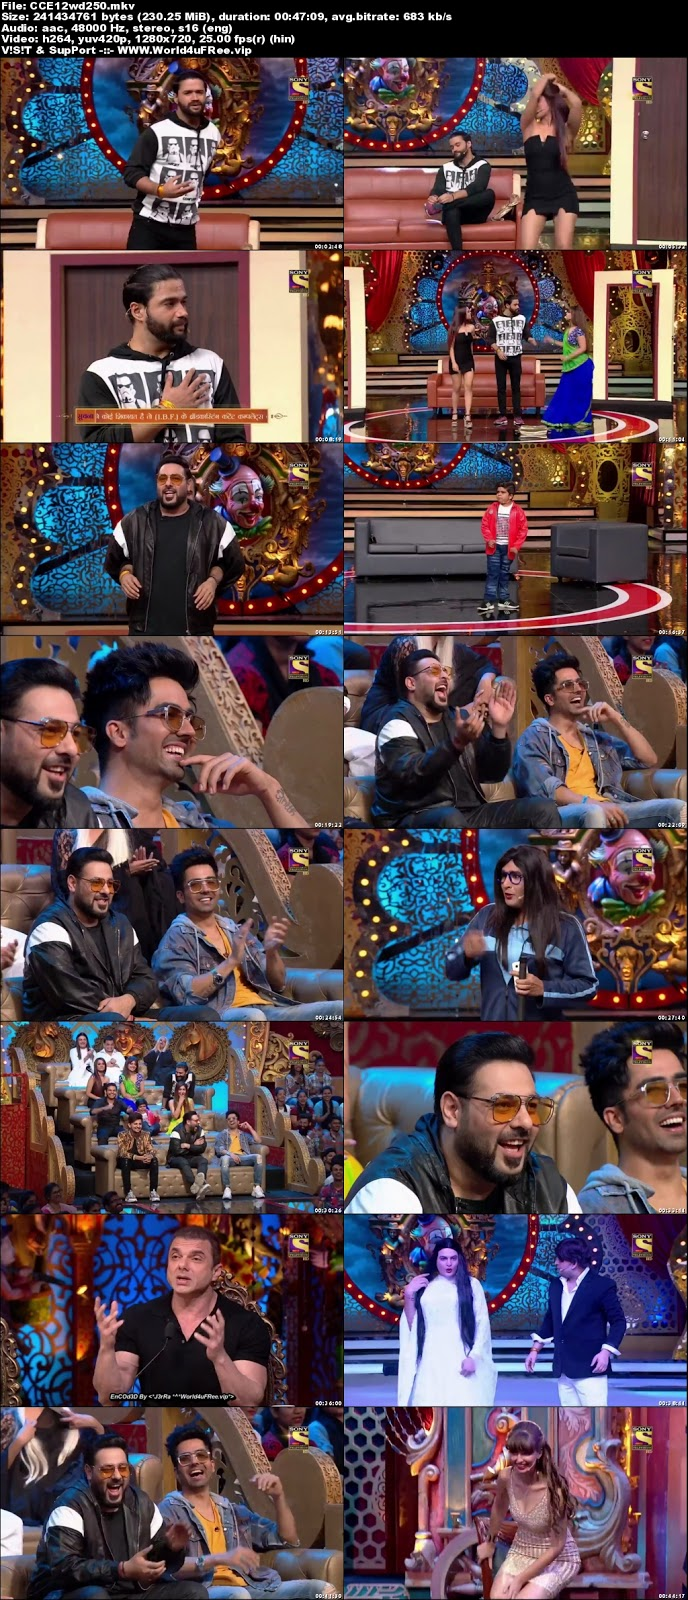 Comedy Circus 2018 Episode 12 720p WEBRip 250mb x264  world4ufree.vip tv show Comedy Circus 2018 hindi tv show Comedy Circus 2018  Season 1 sony tv show compressed small size free download or watch online at world4ufree.vip